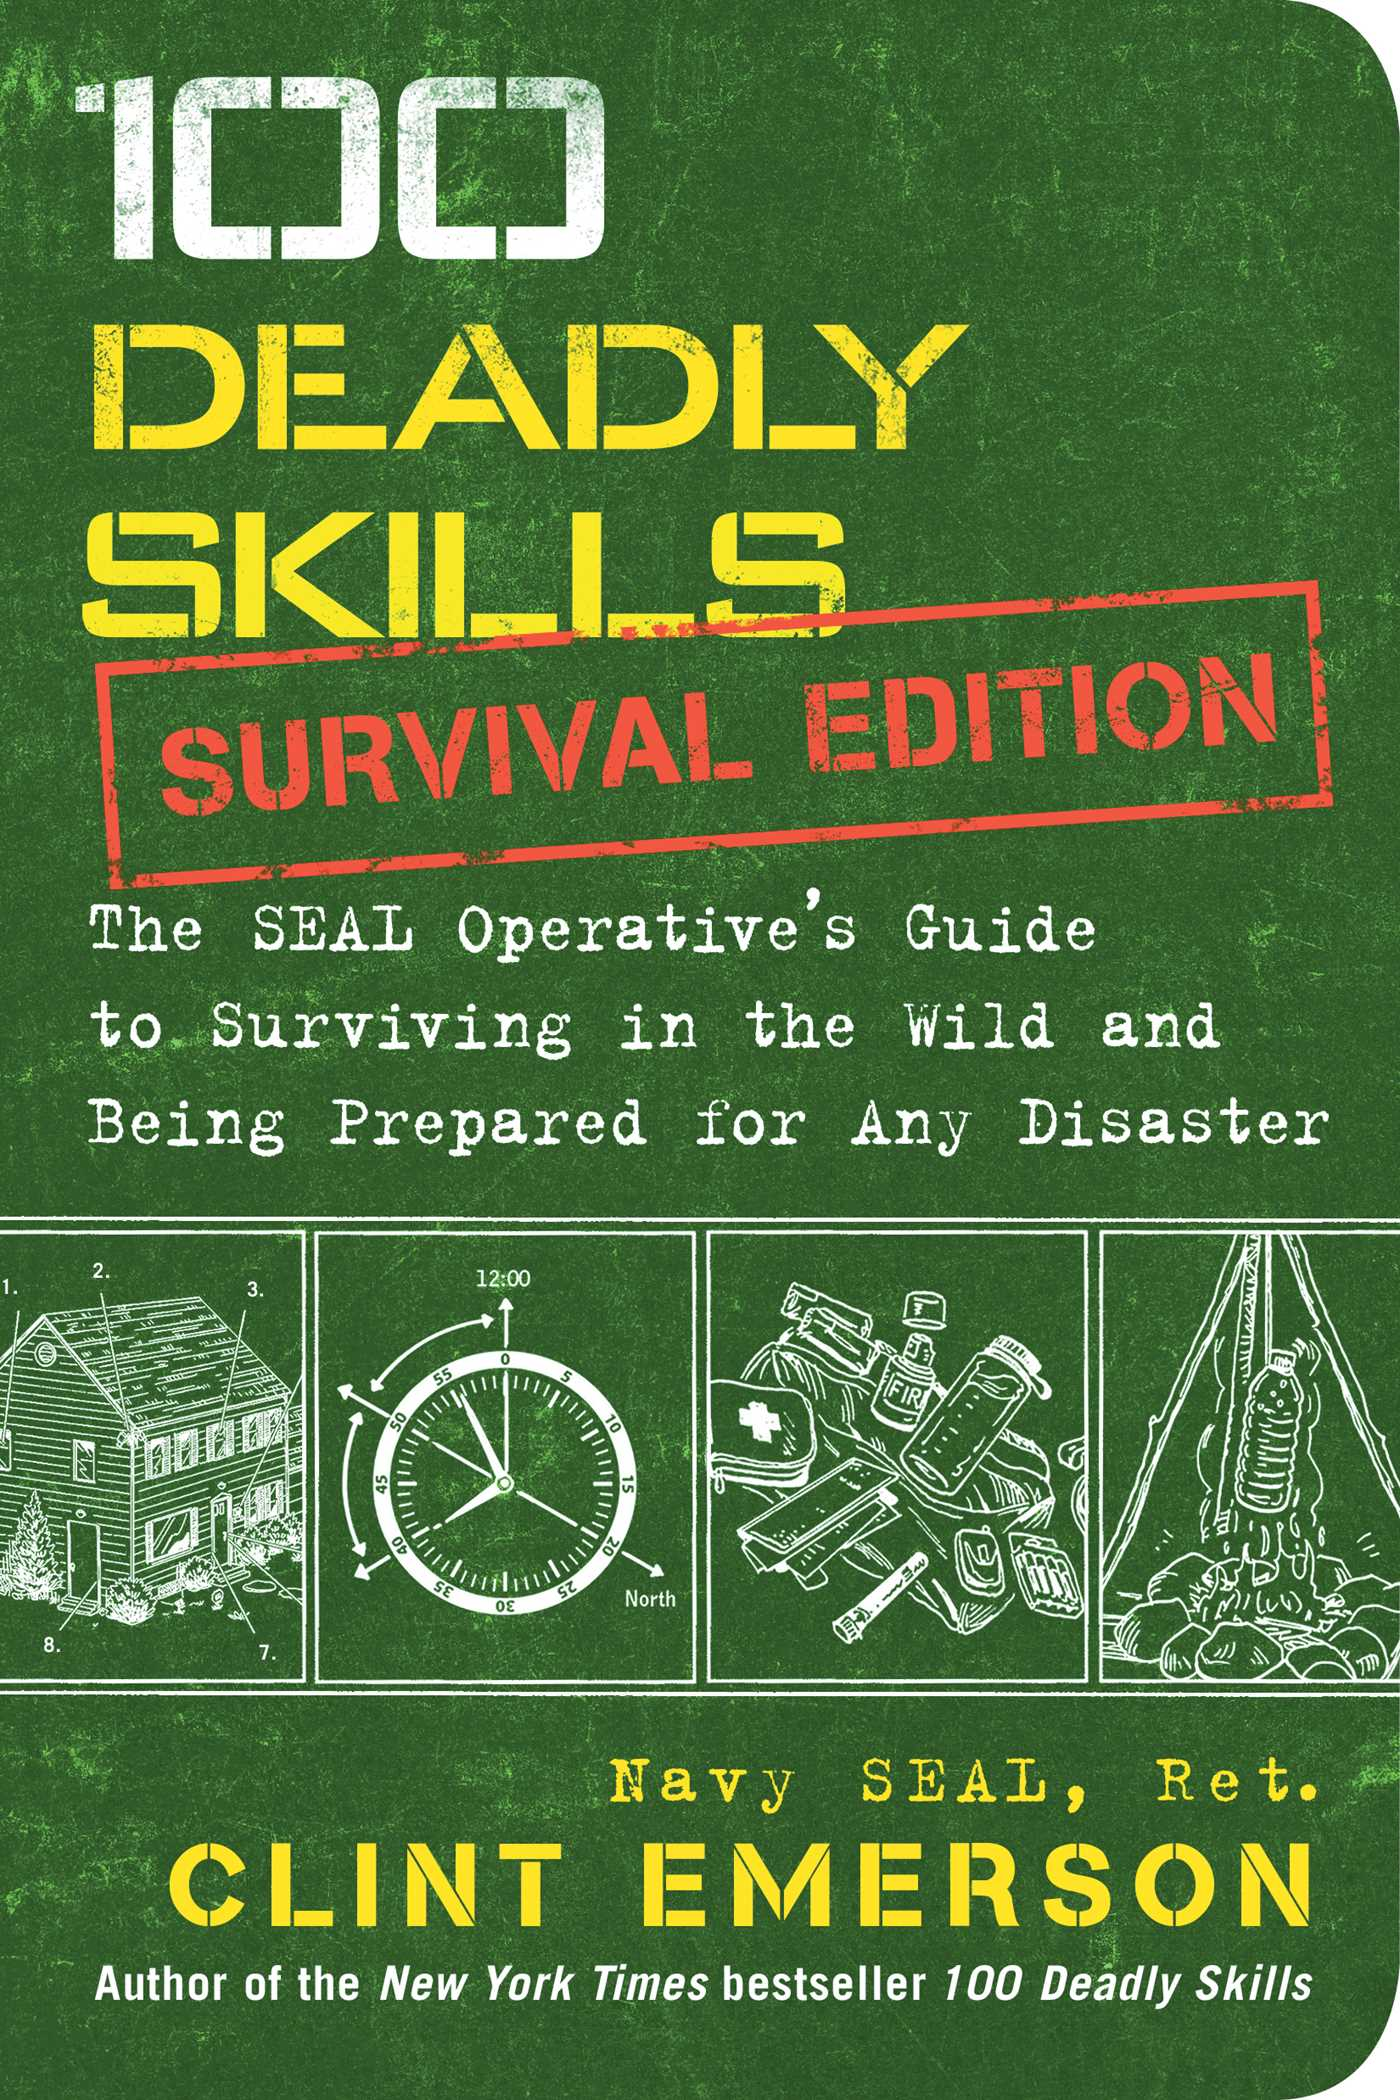 100 deadly skills survival edition 9781501143908 hr